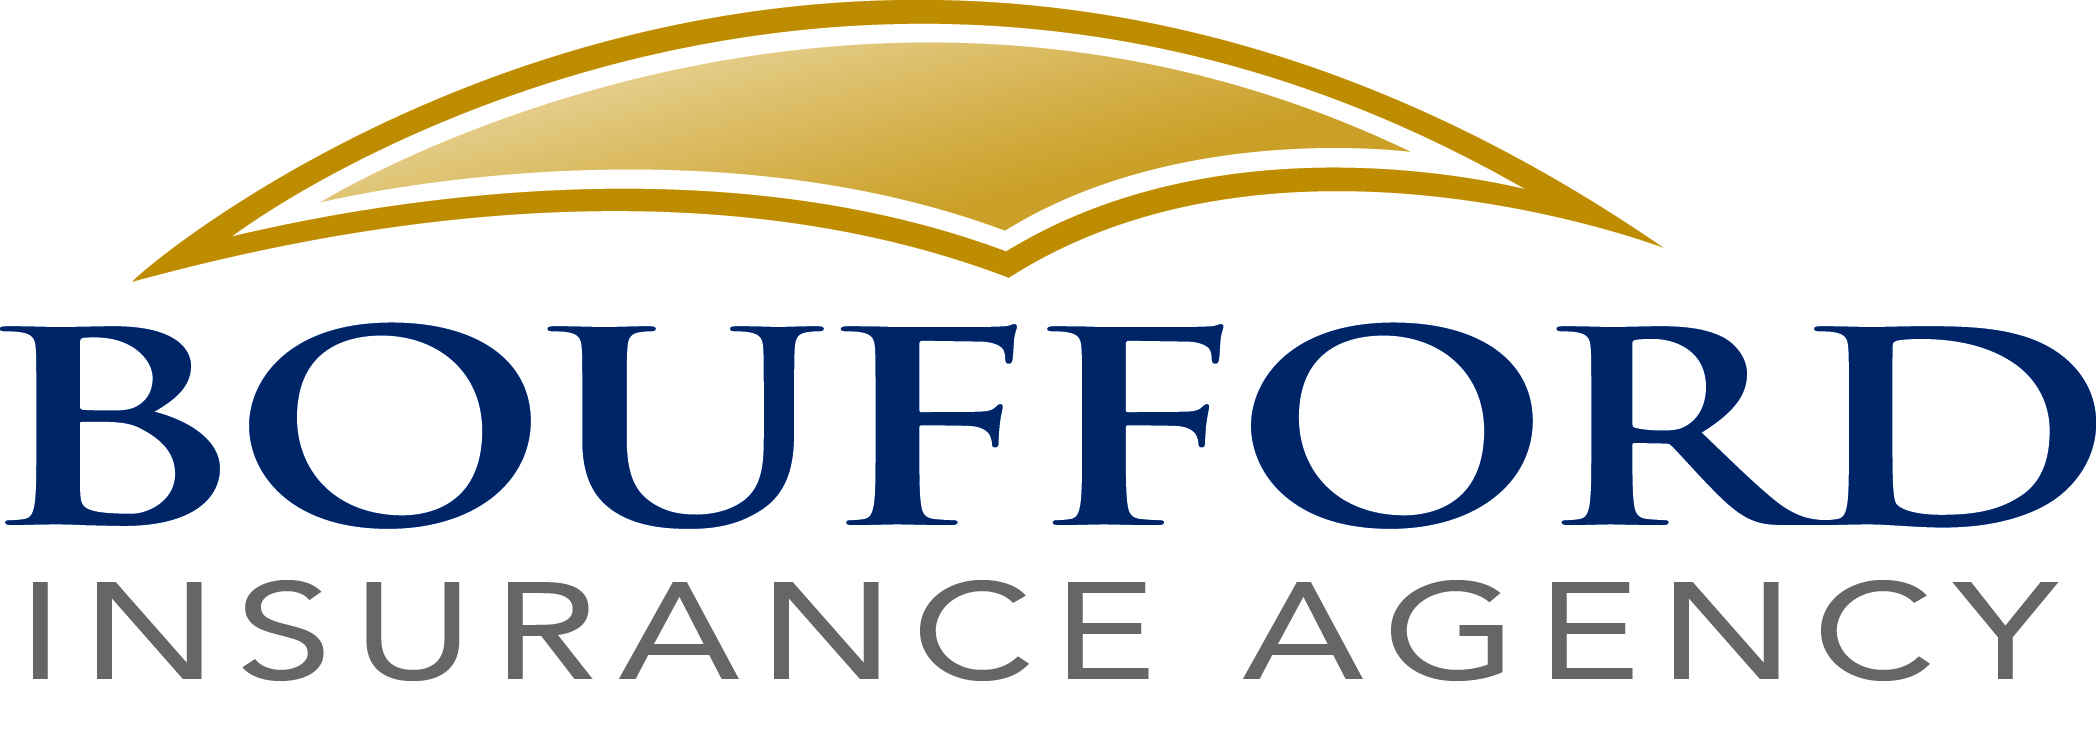 Boyd & Boufford Insurance Agency LLC